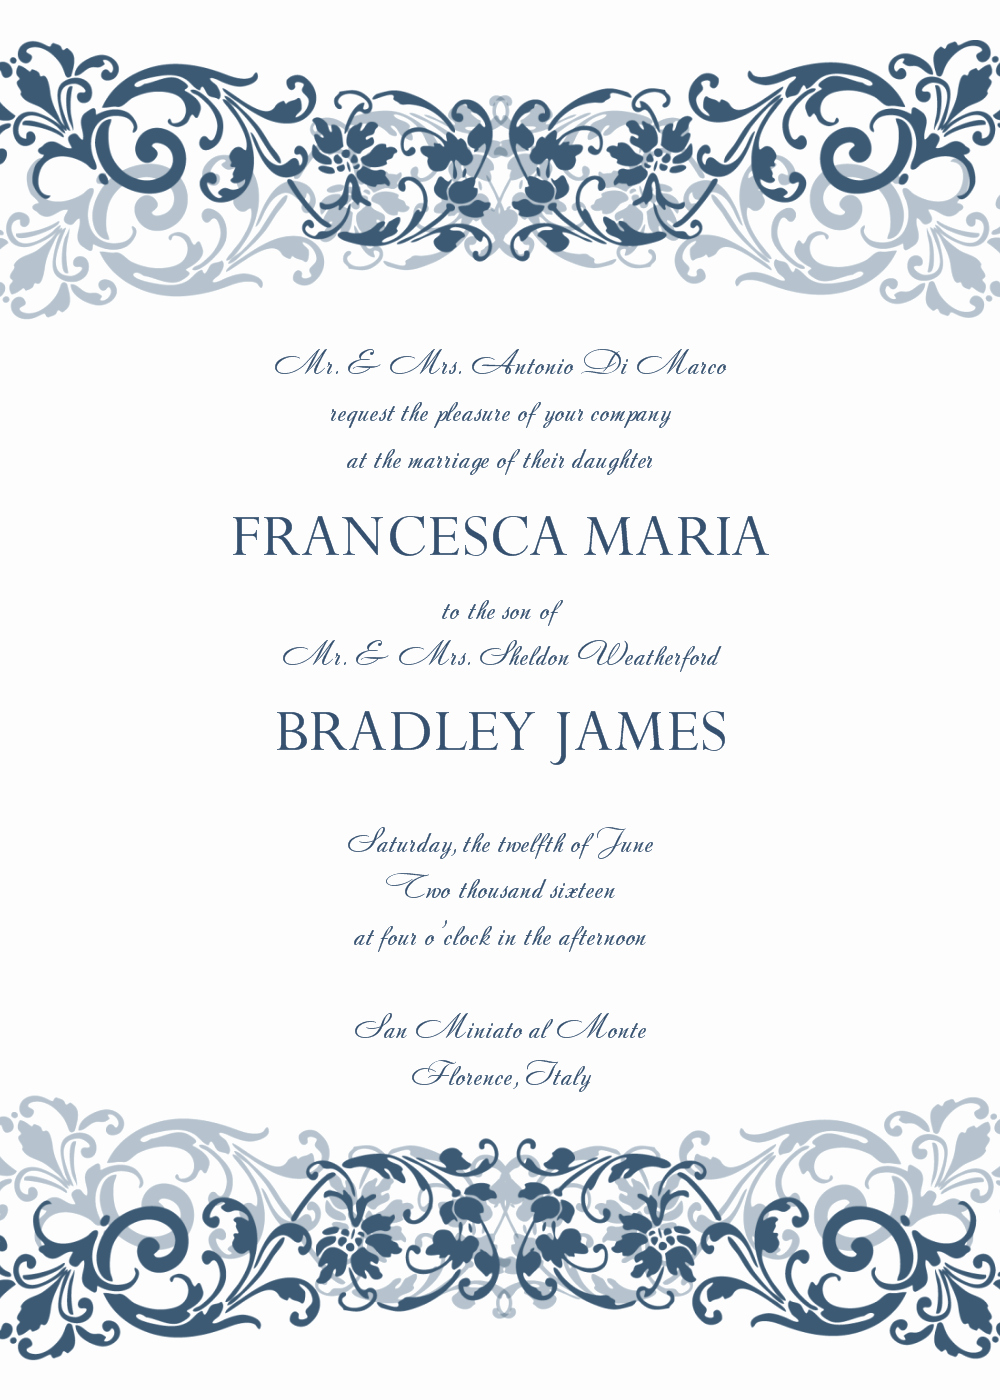 Wedding Invitations Templates